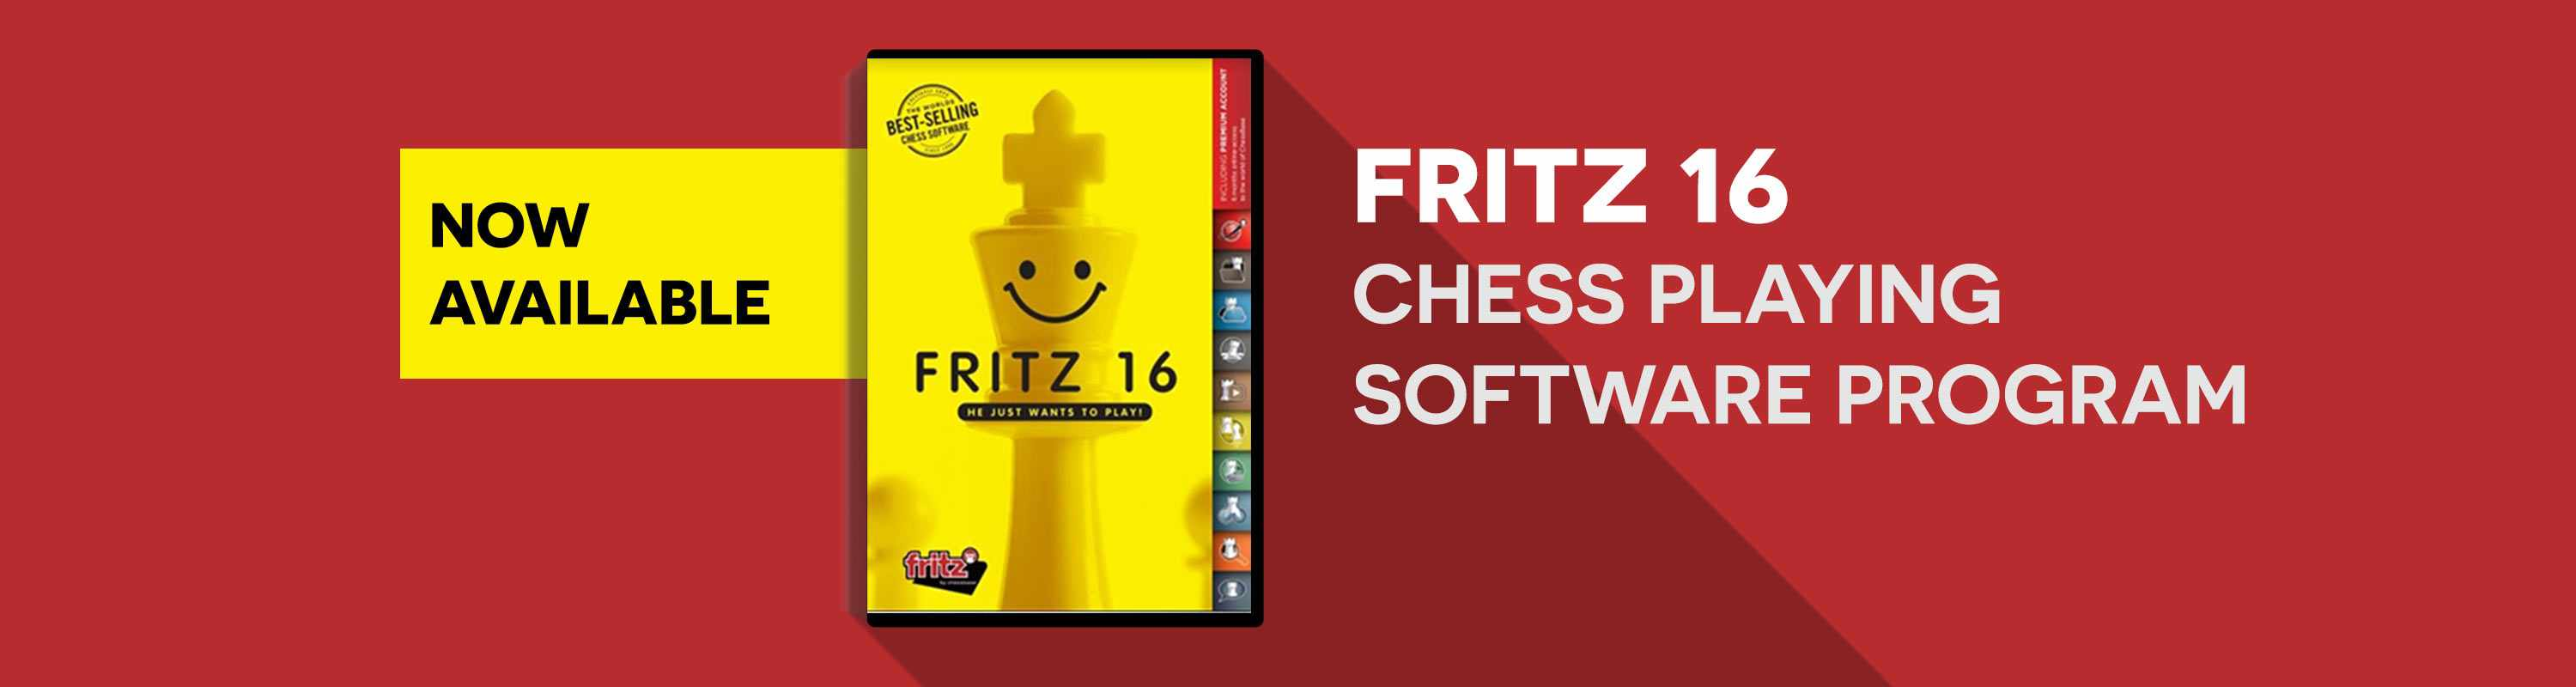 Fritz 16 is Now available!